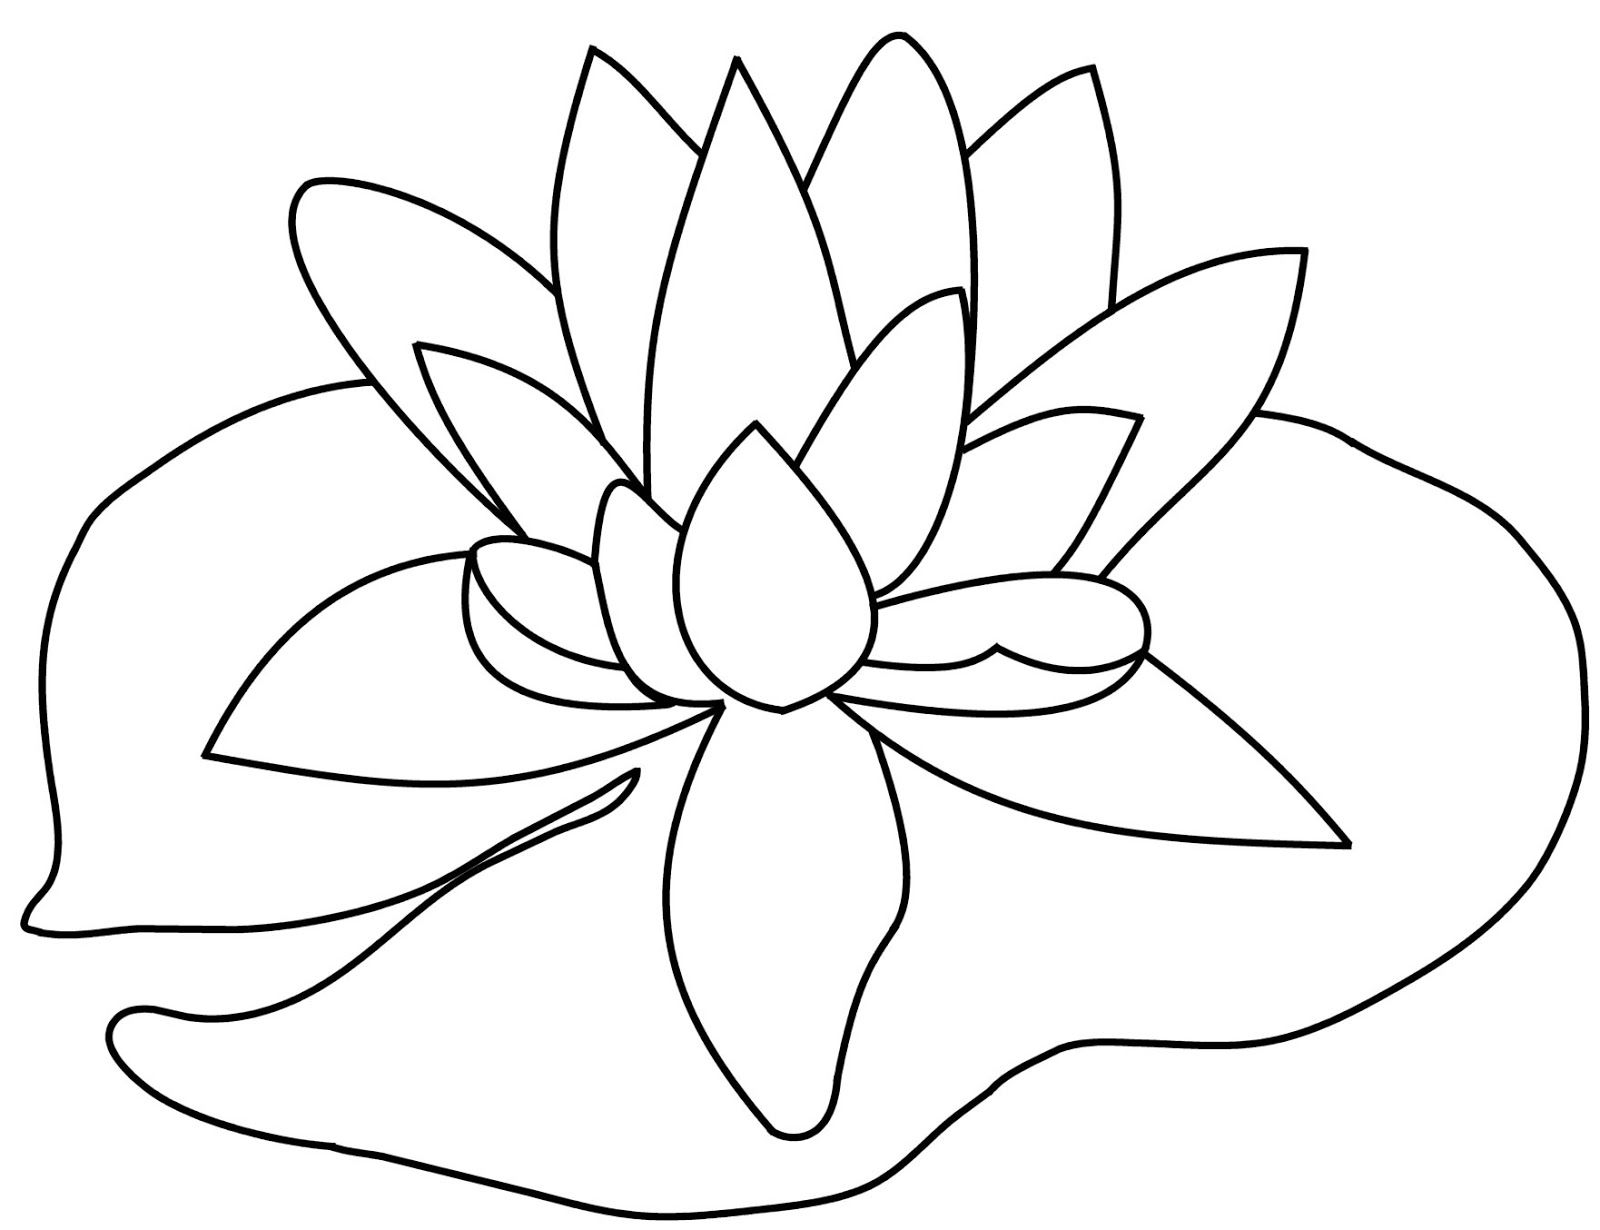 Free Lily Pad Template Download Free Clip Art Free Clip Art On